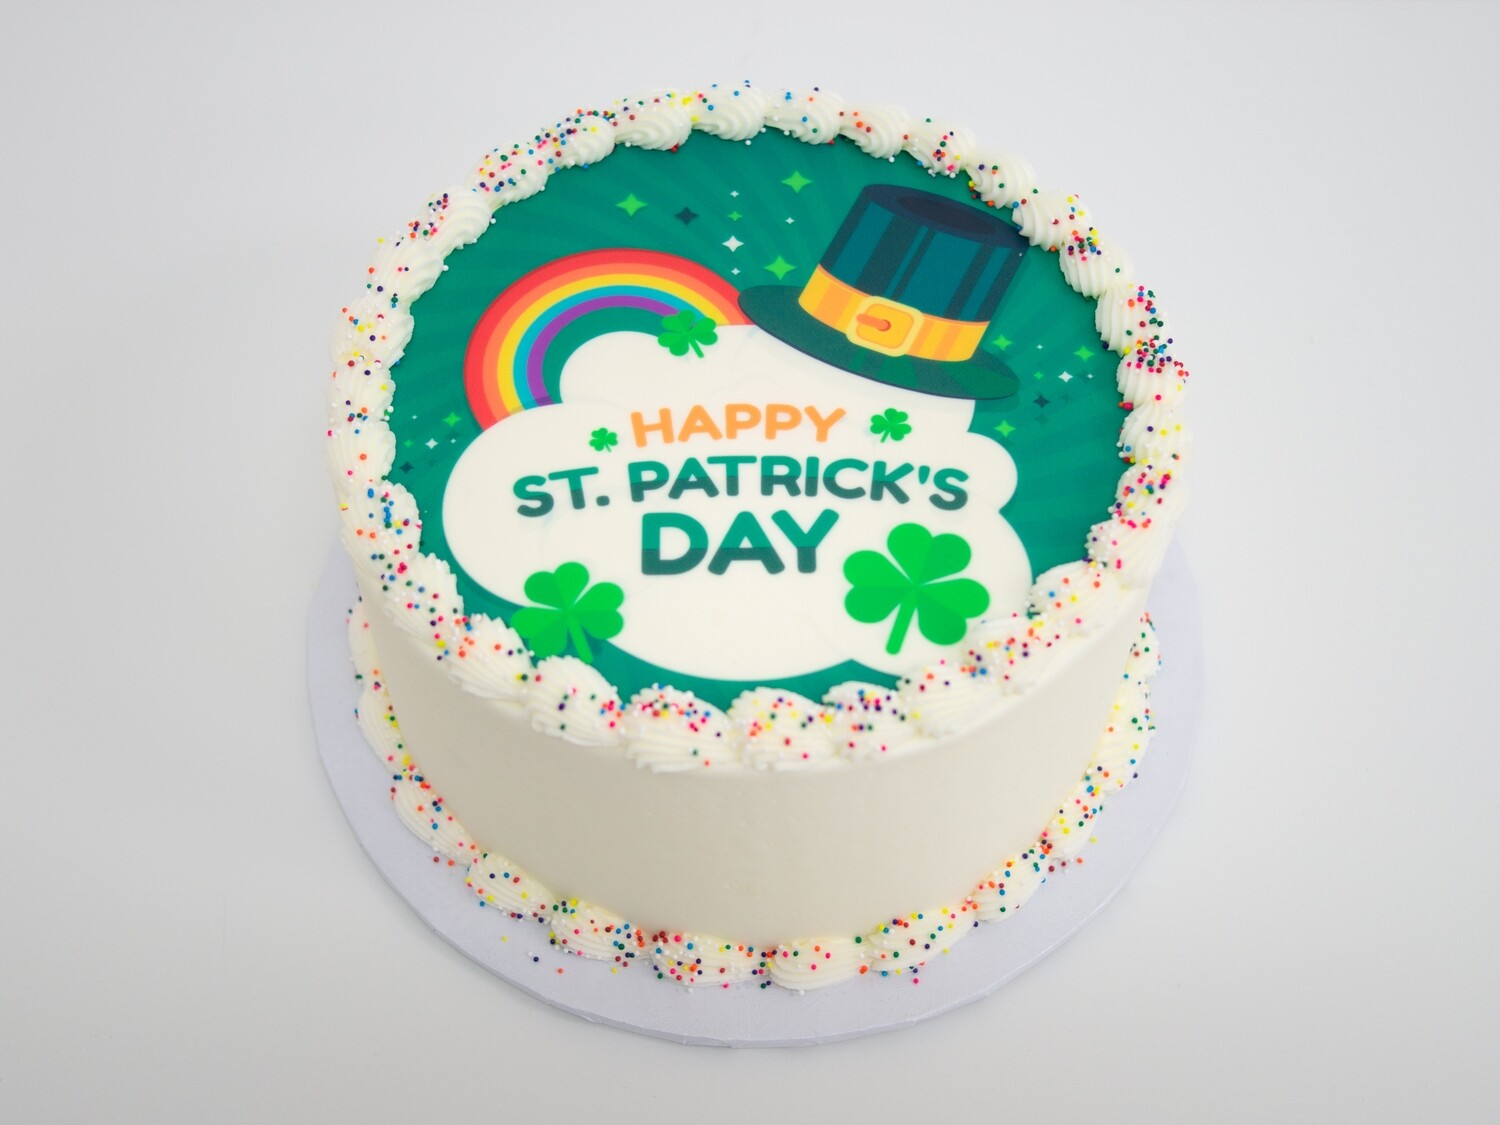 Happy St. Patrick's Day Image Cake